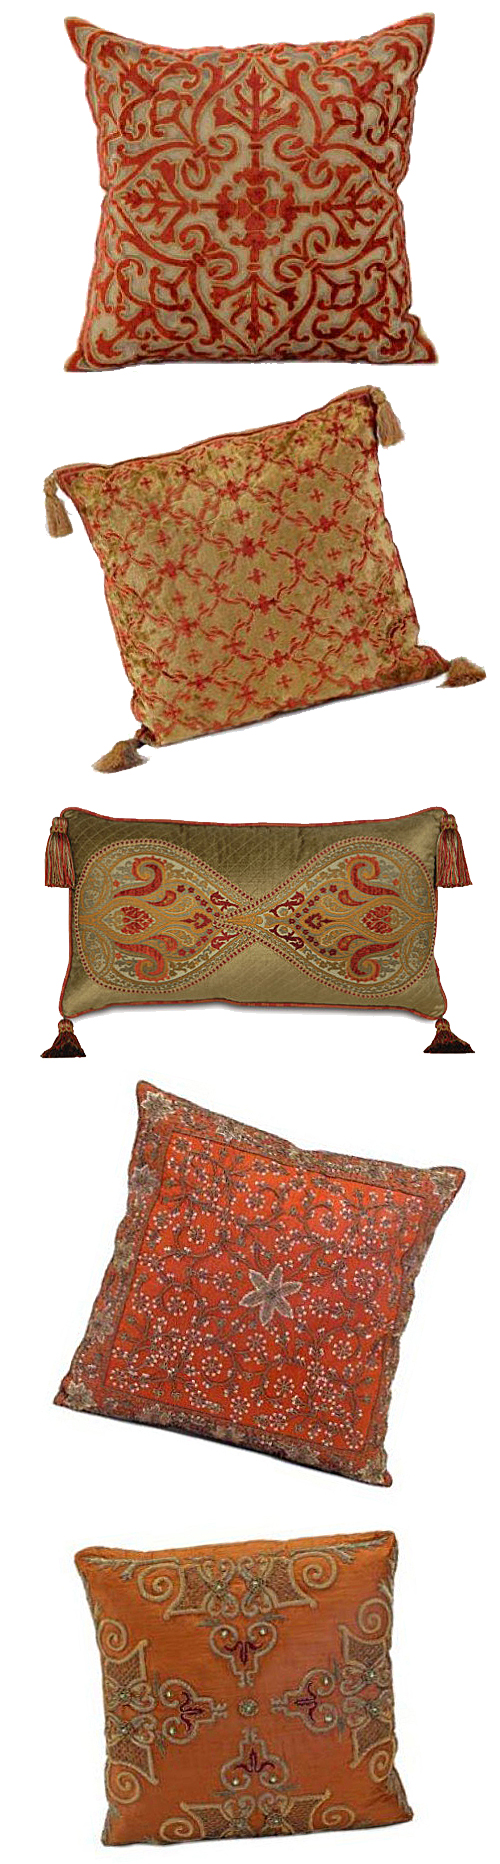 Pillows from Indeed Decor